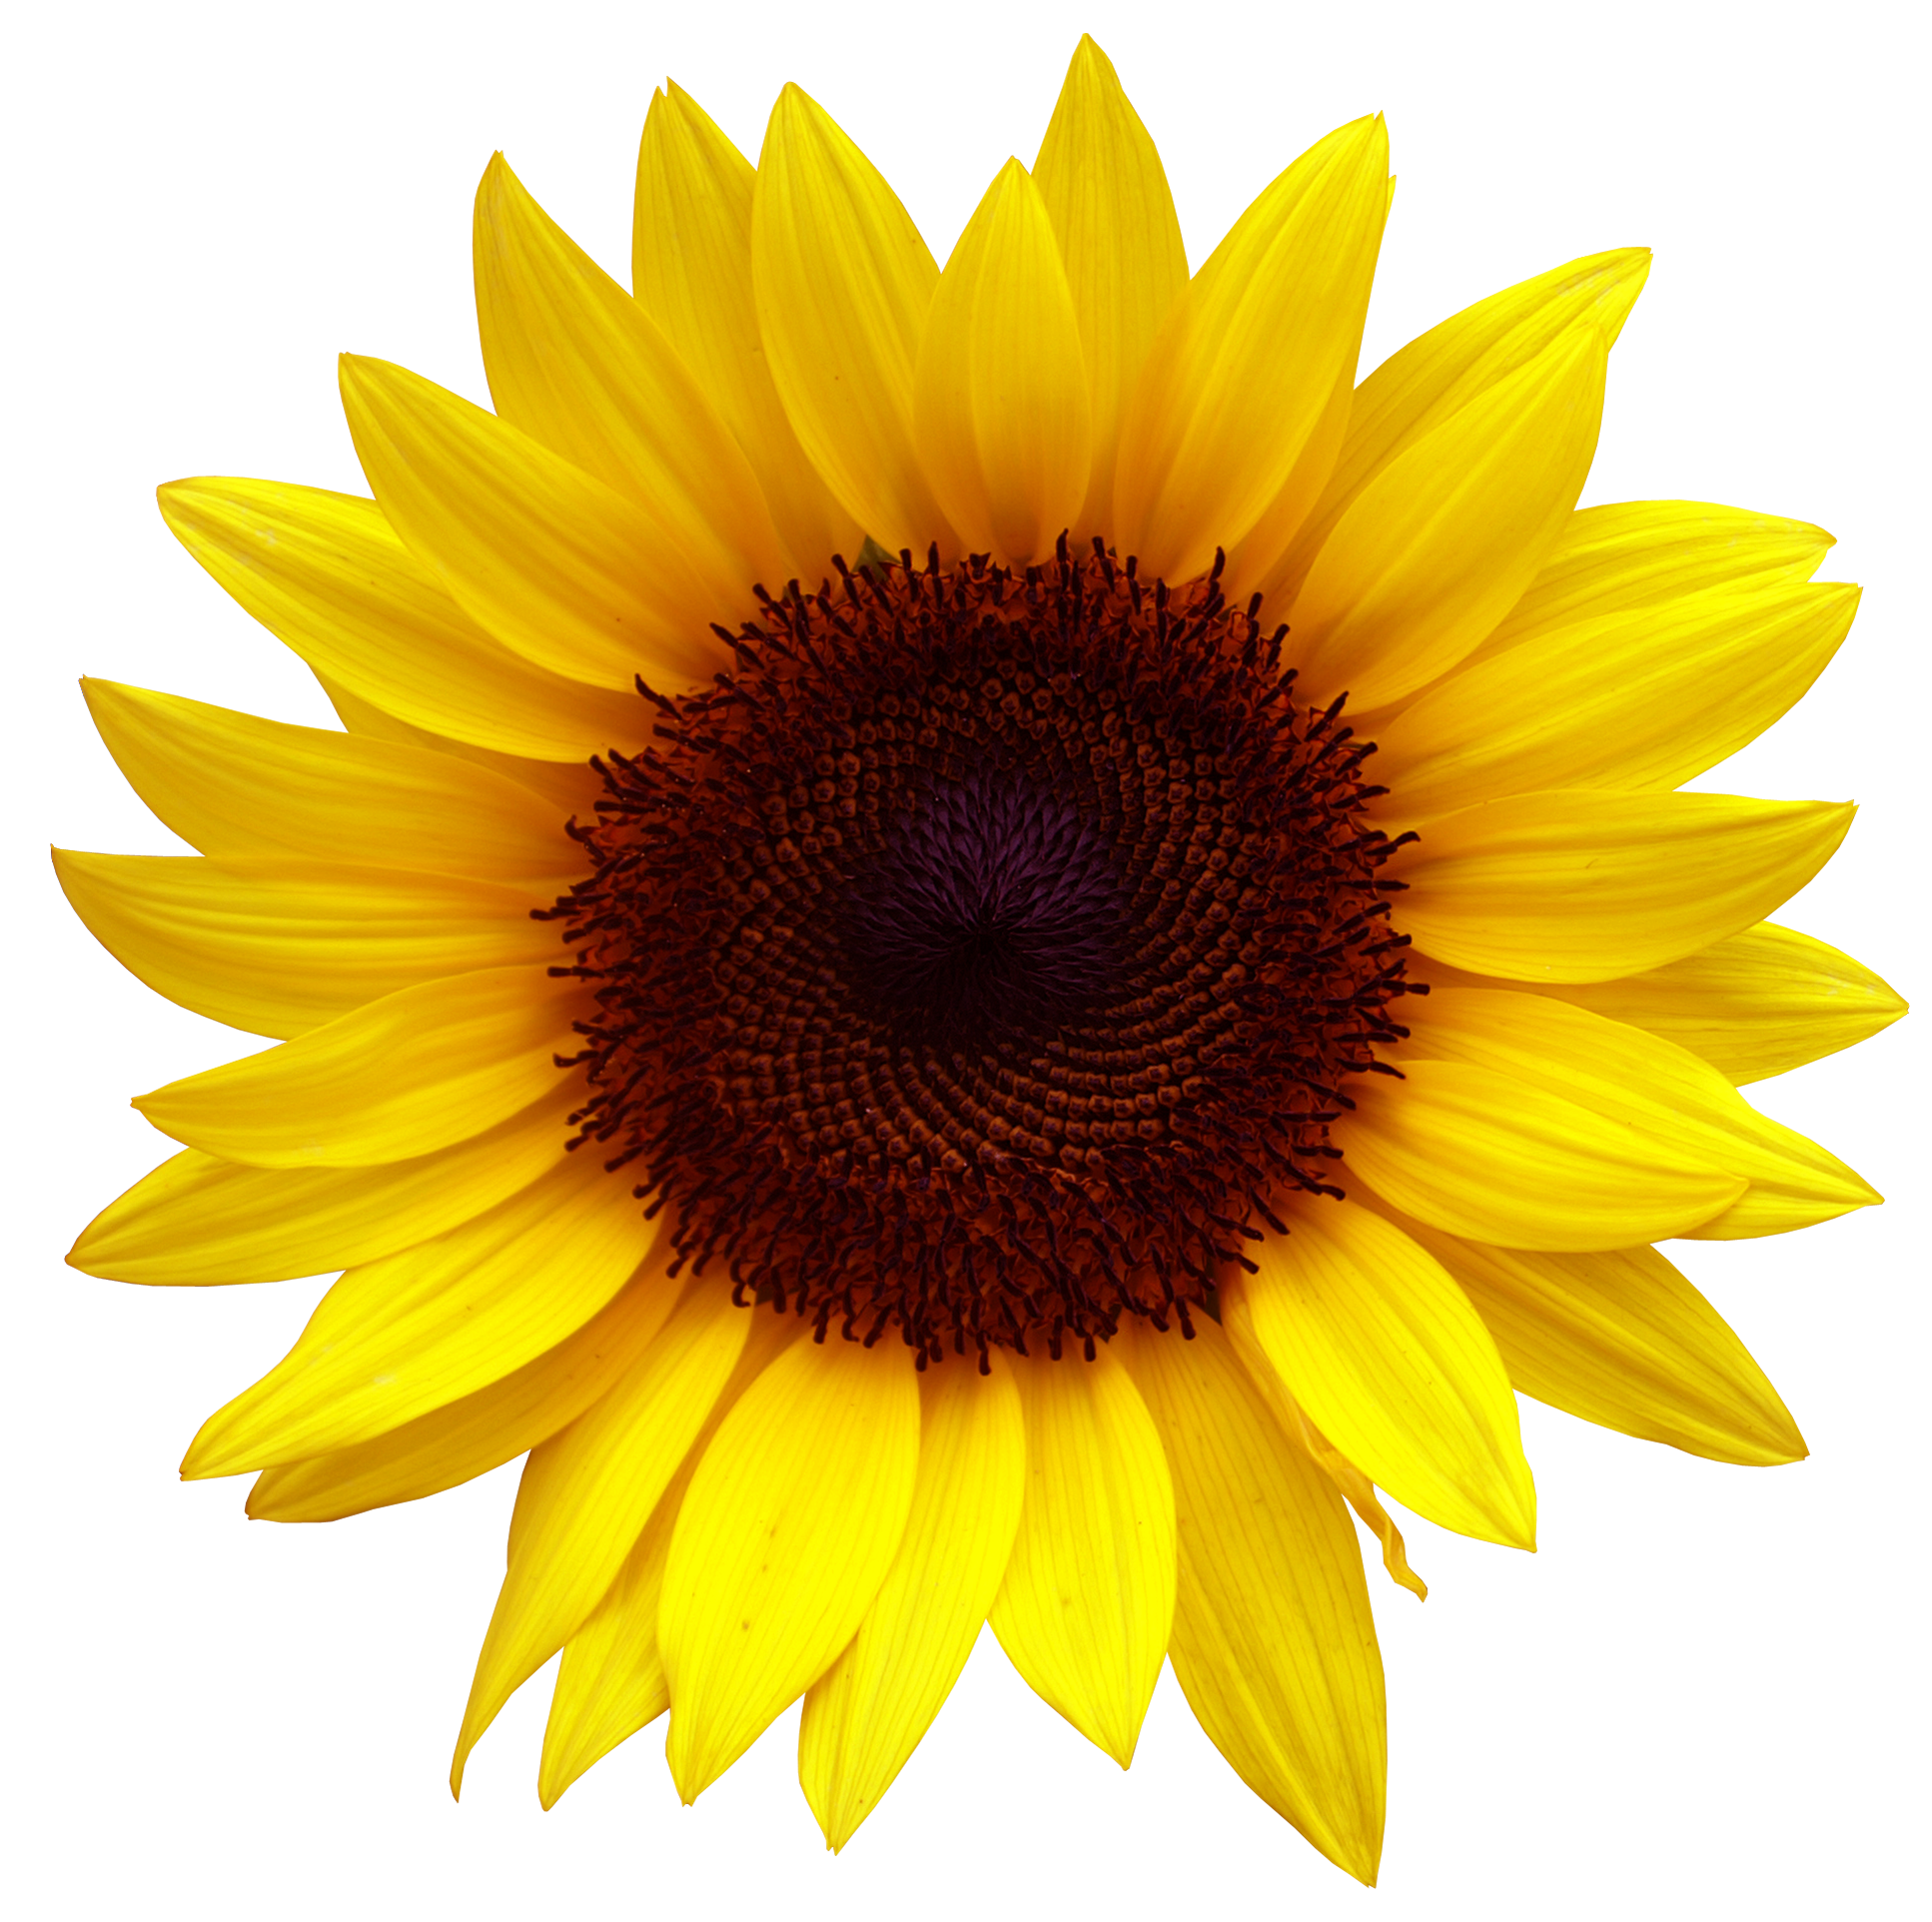 Common sunflower Clip art Sunflower Clipart PNG Image